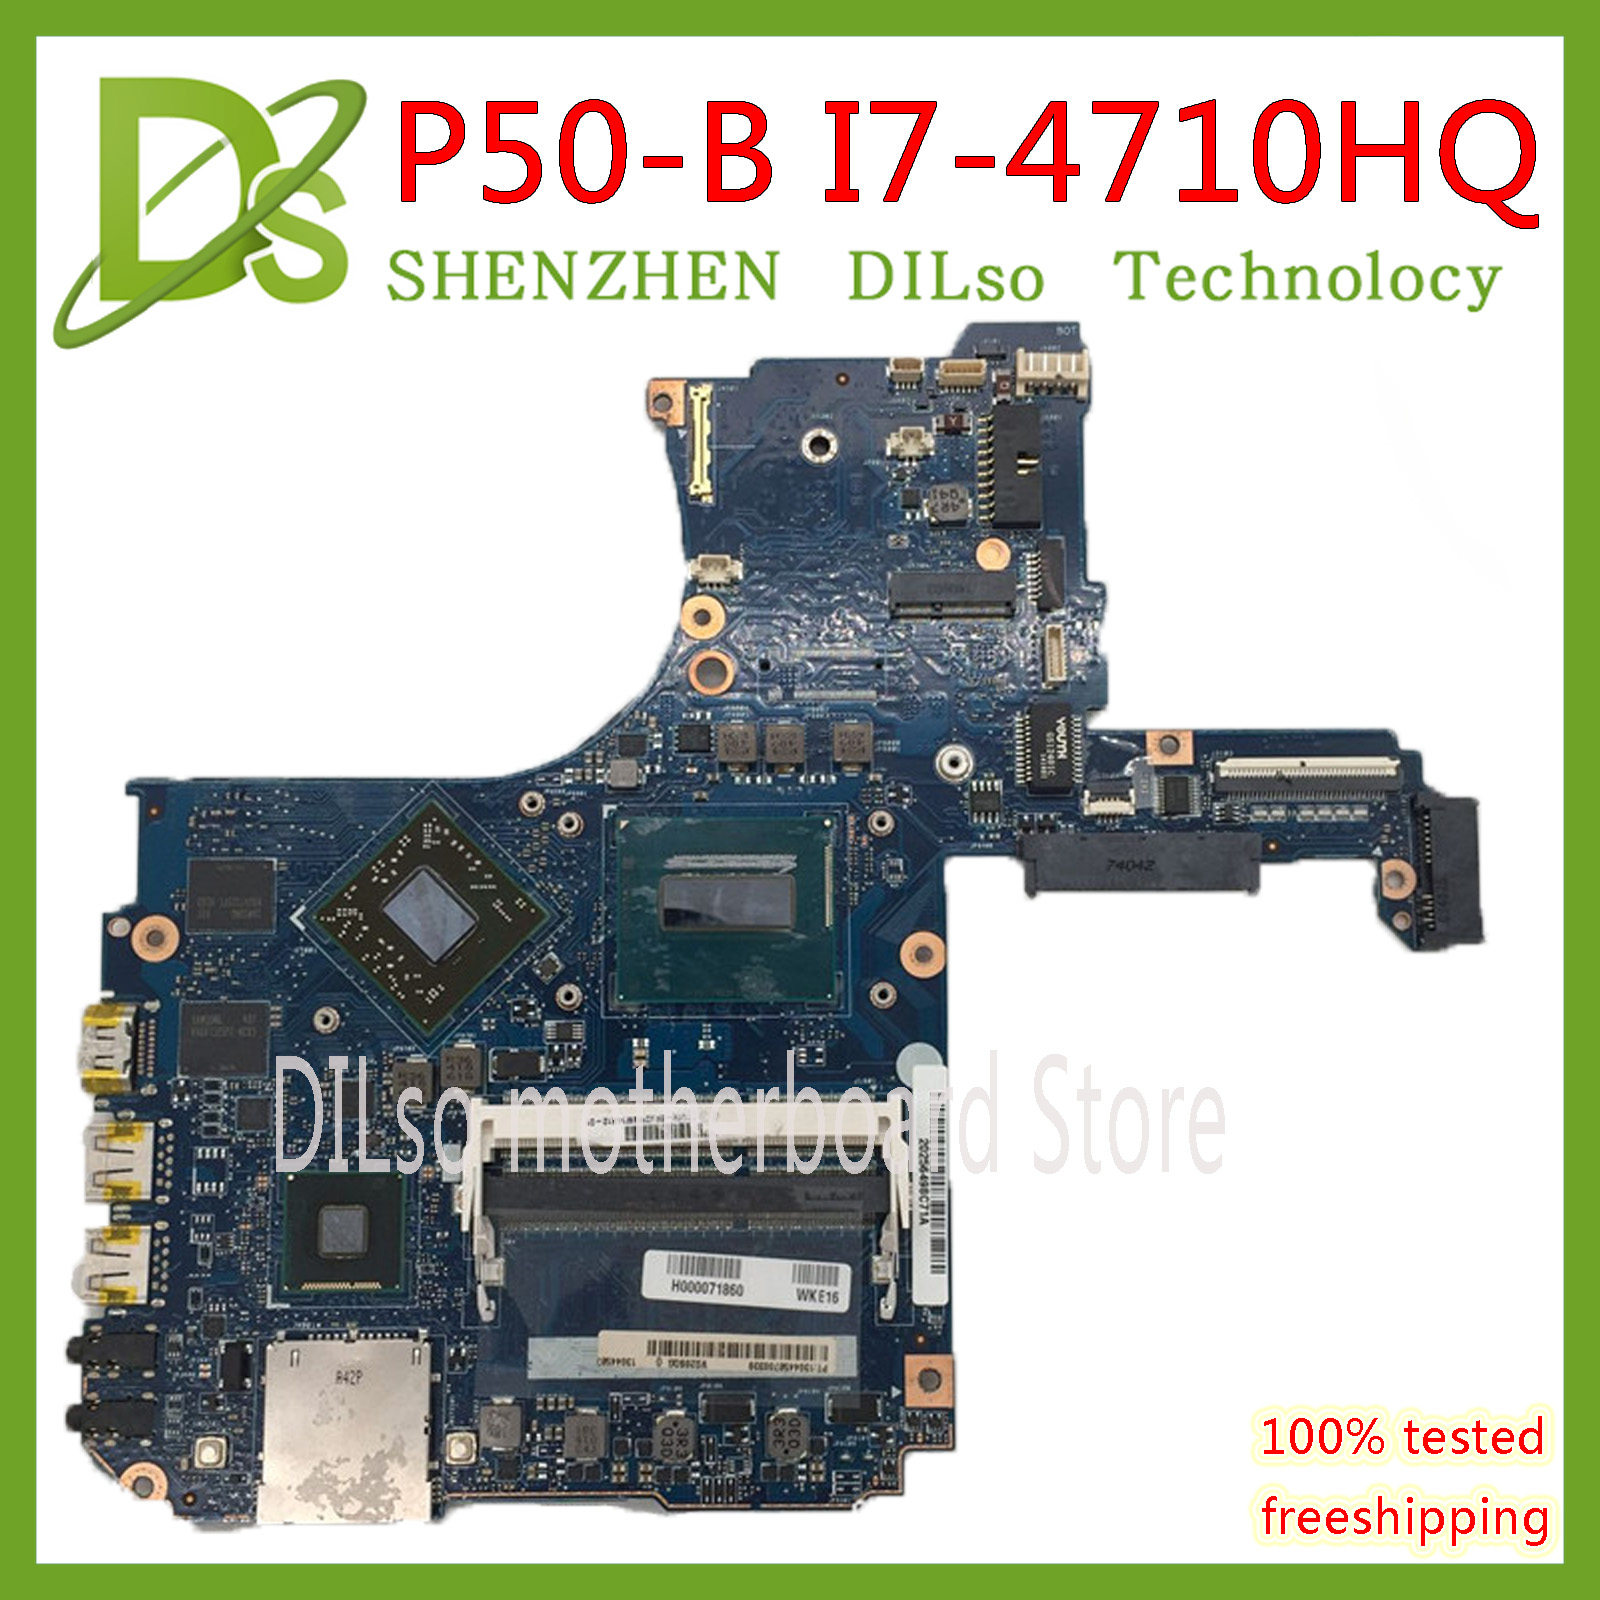 KEFU P50-B MOTHERBOARD For Toshiba P50-B P55T-B Motherboard I7-4710HQ CPU R9-M265X GPU H000075410 100% Original TEST